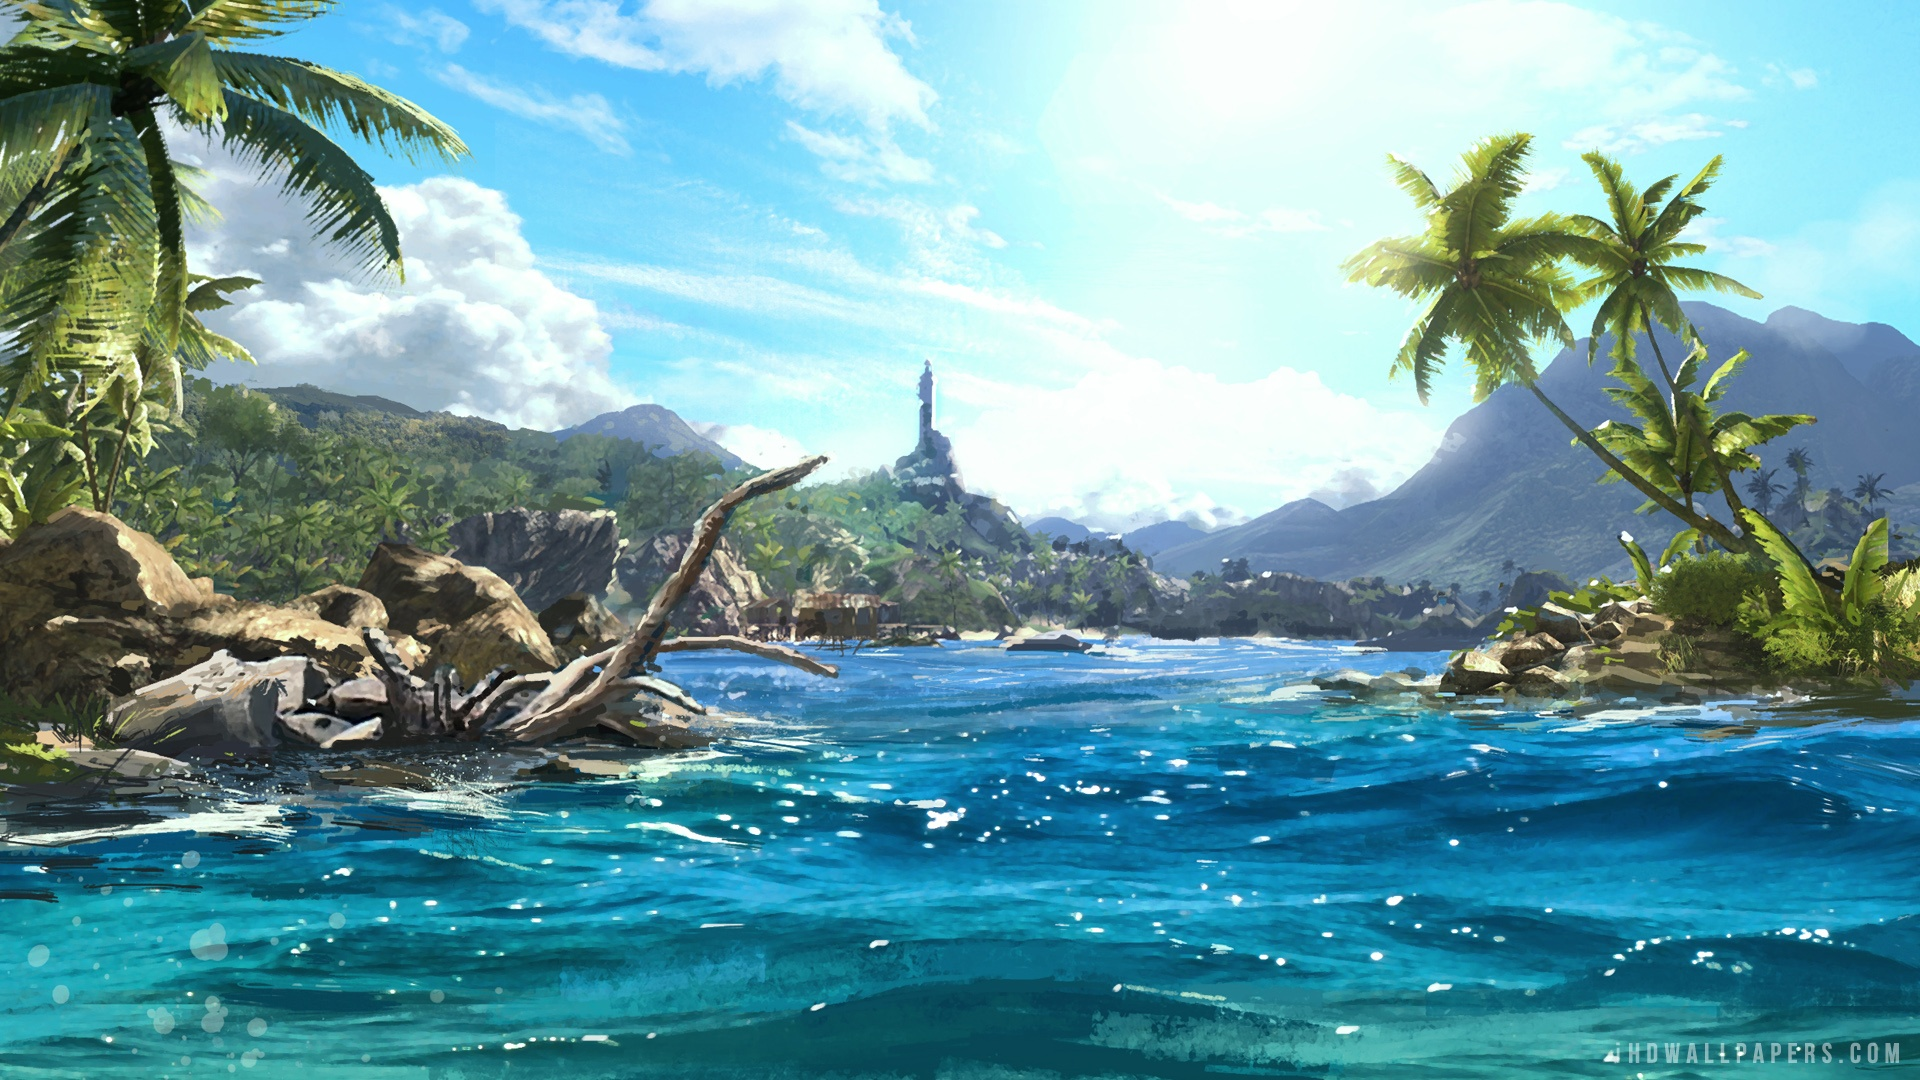 Free Download Far Cry 3 Scenery Hd Wallpaper Ihd Wallpapers